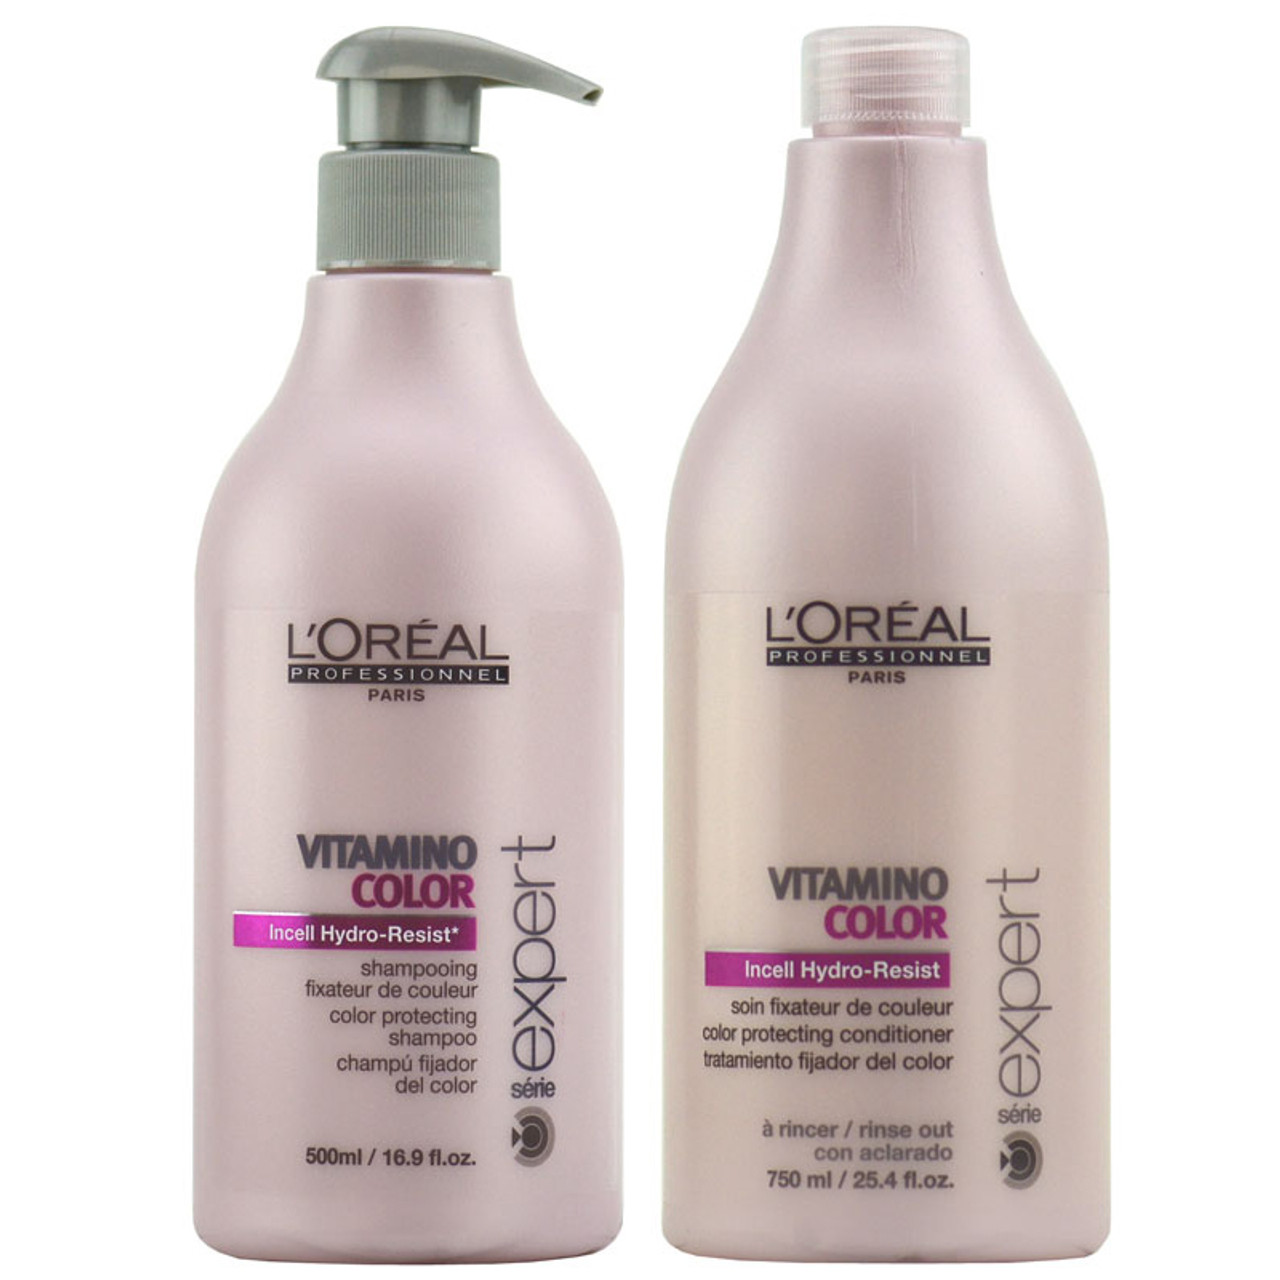 29d0650ee L'Oreal Serie Expert Vitamino Color Shampoo and Condition Kit - Hair Square